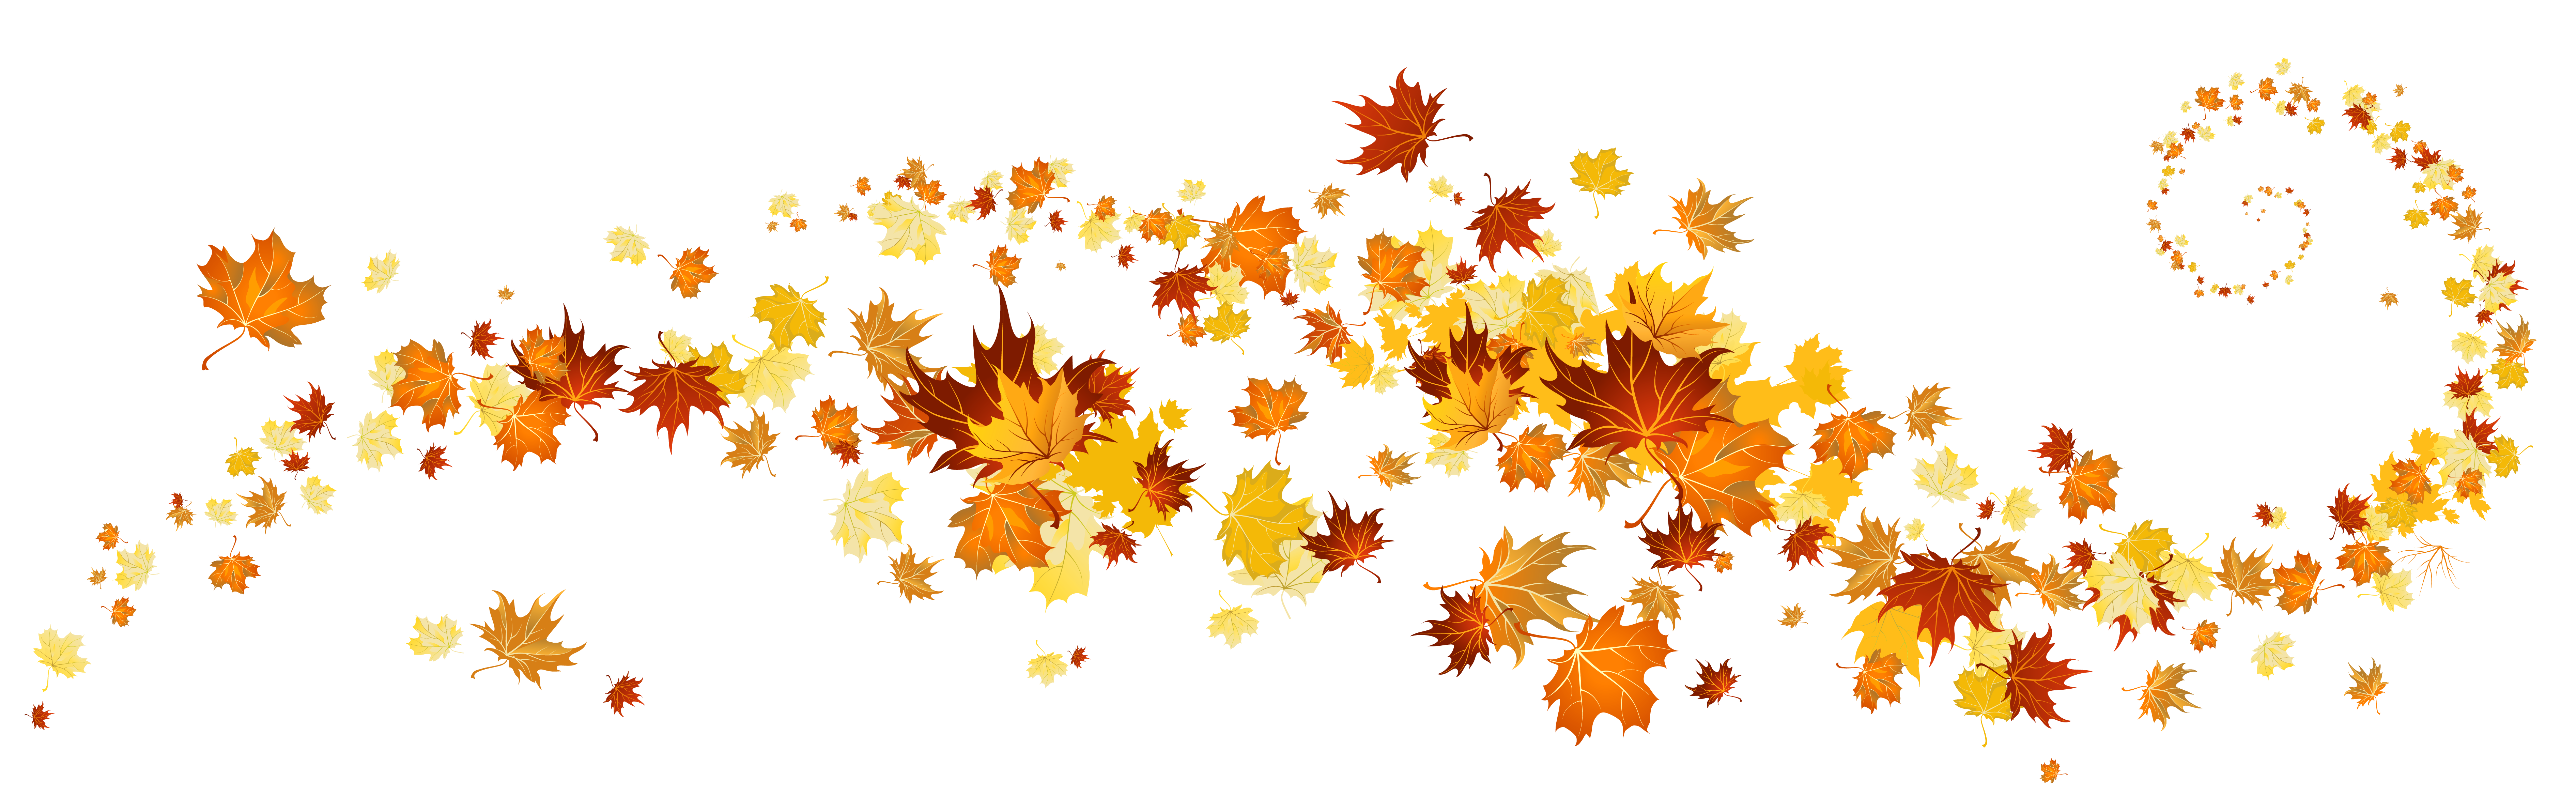 15652 Fall free clipart.